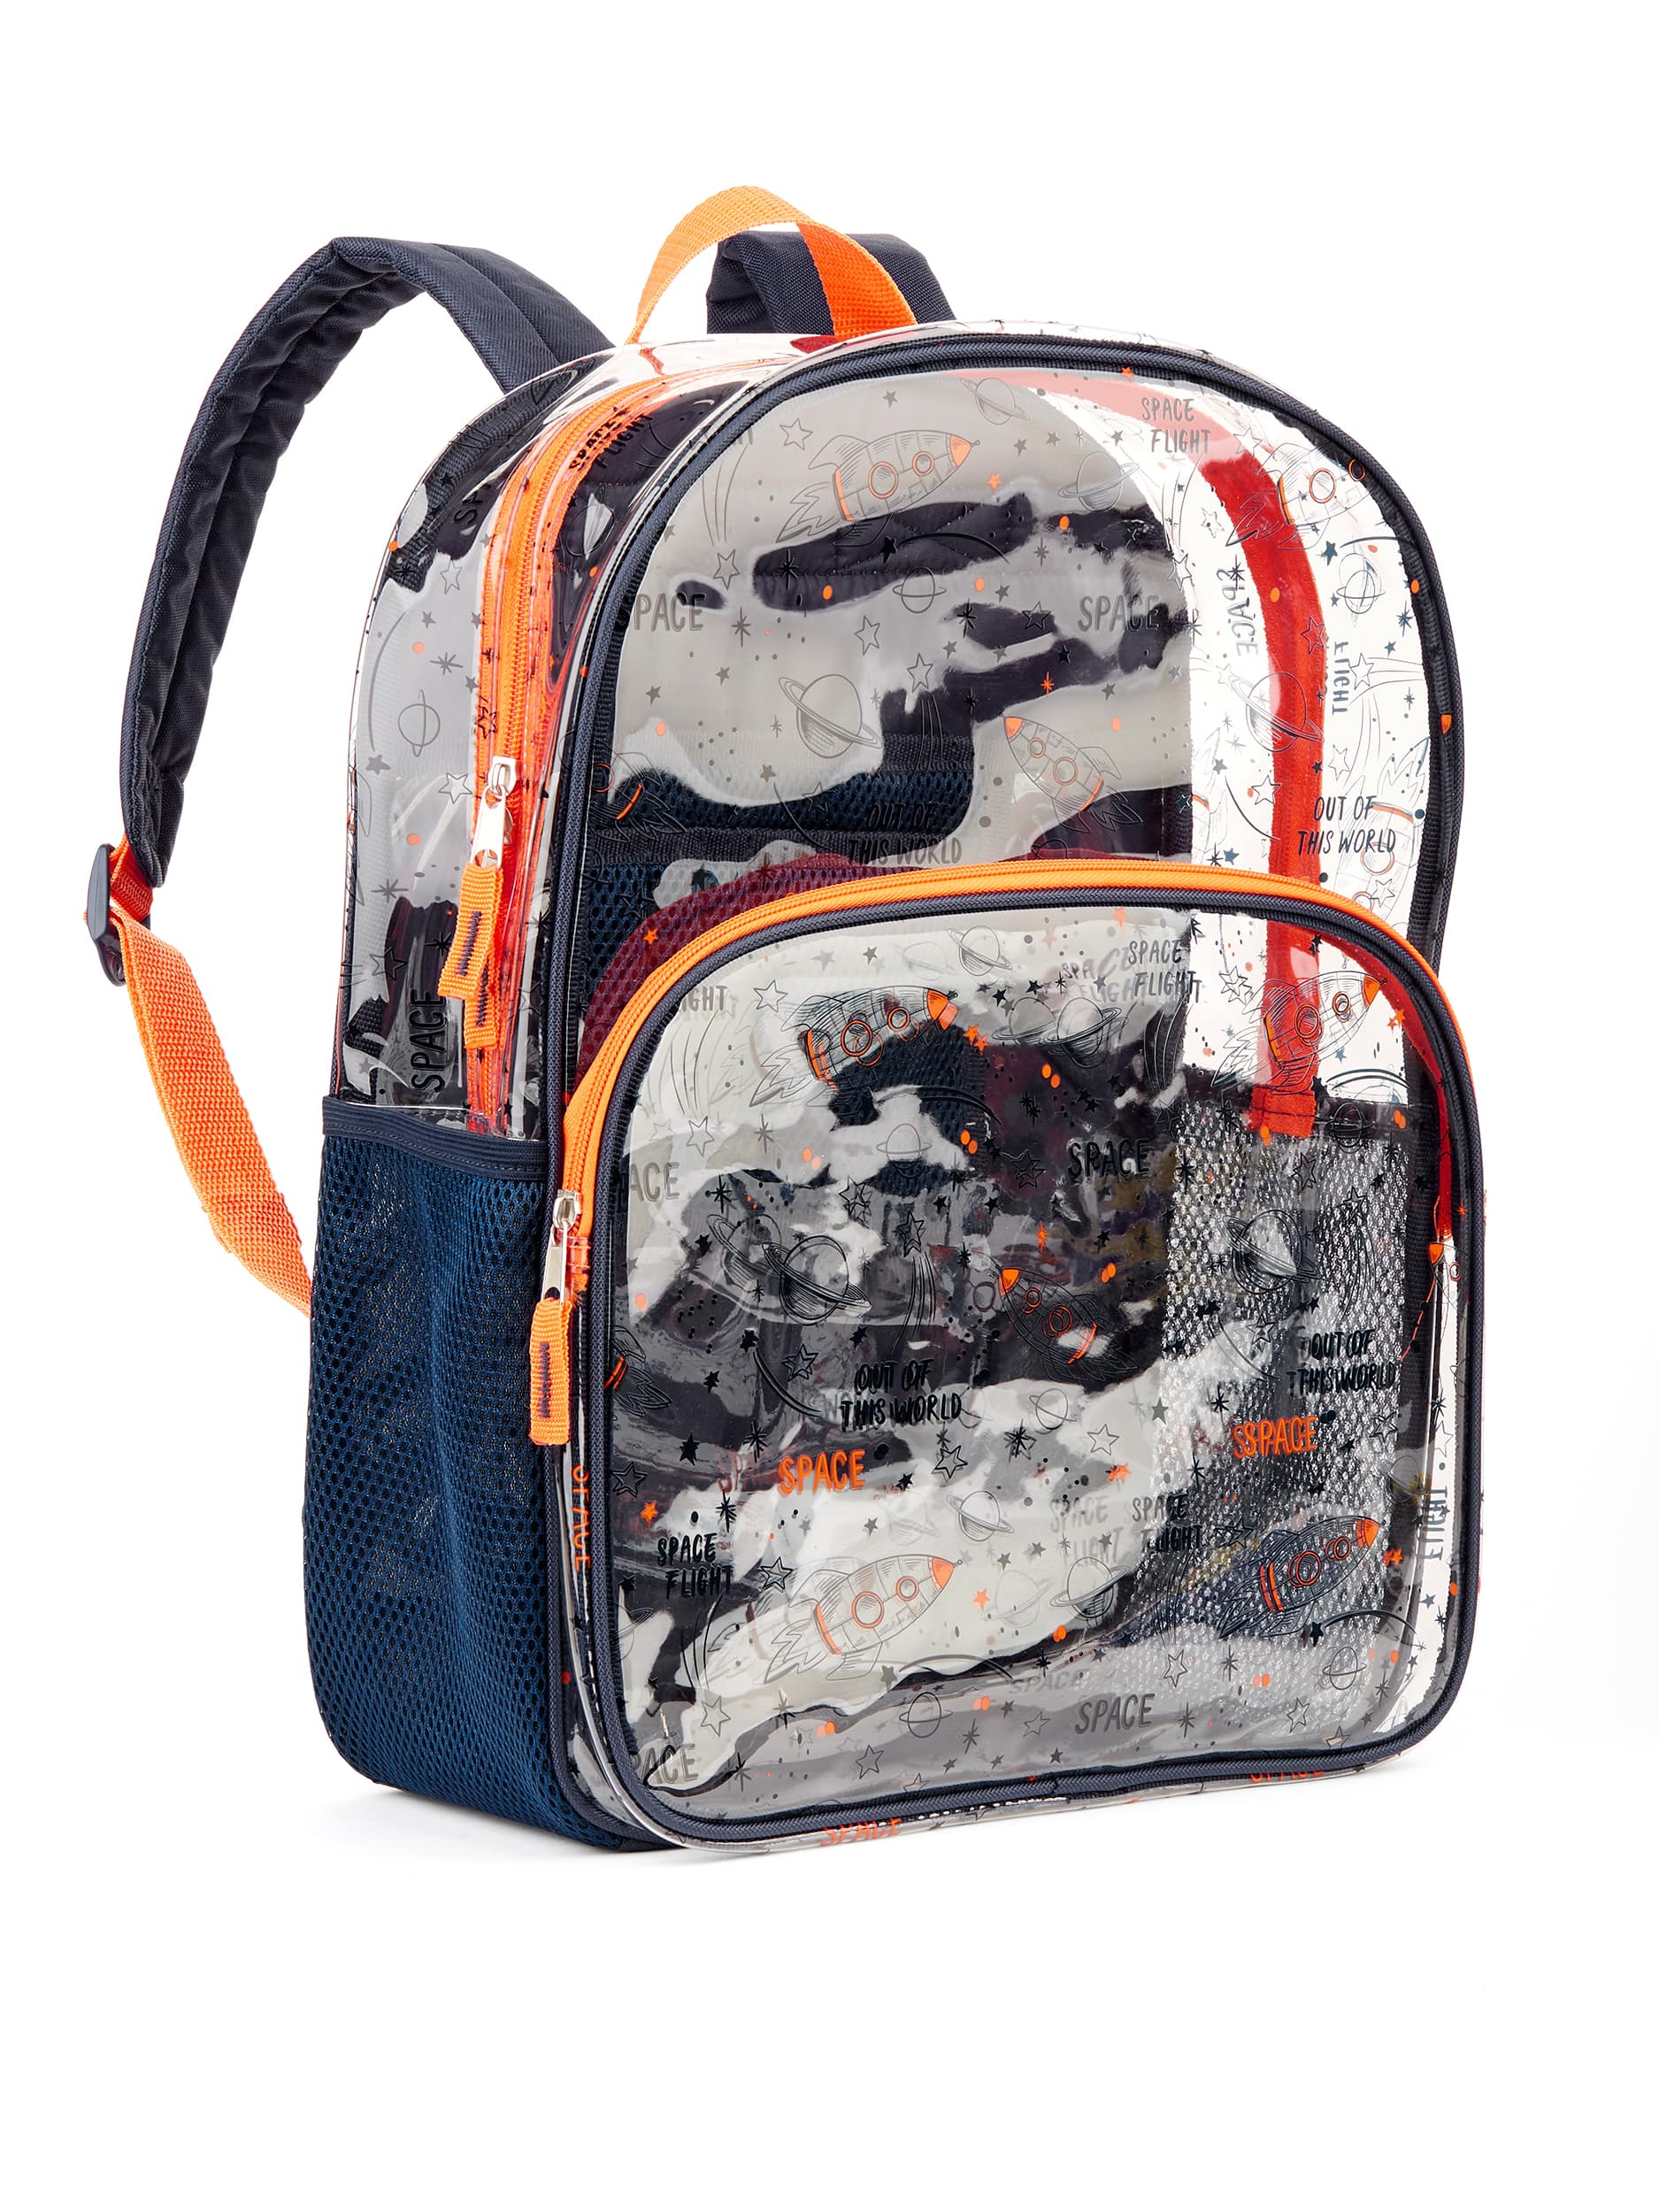 """16"""" Wonder Nation Clear Childrens Backpack $4.50 (3 colors) + Free store pickup at Walmart"""